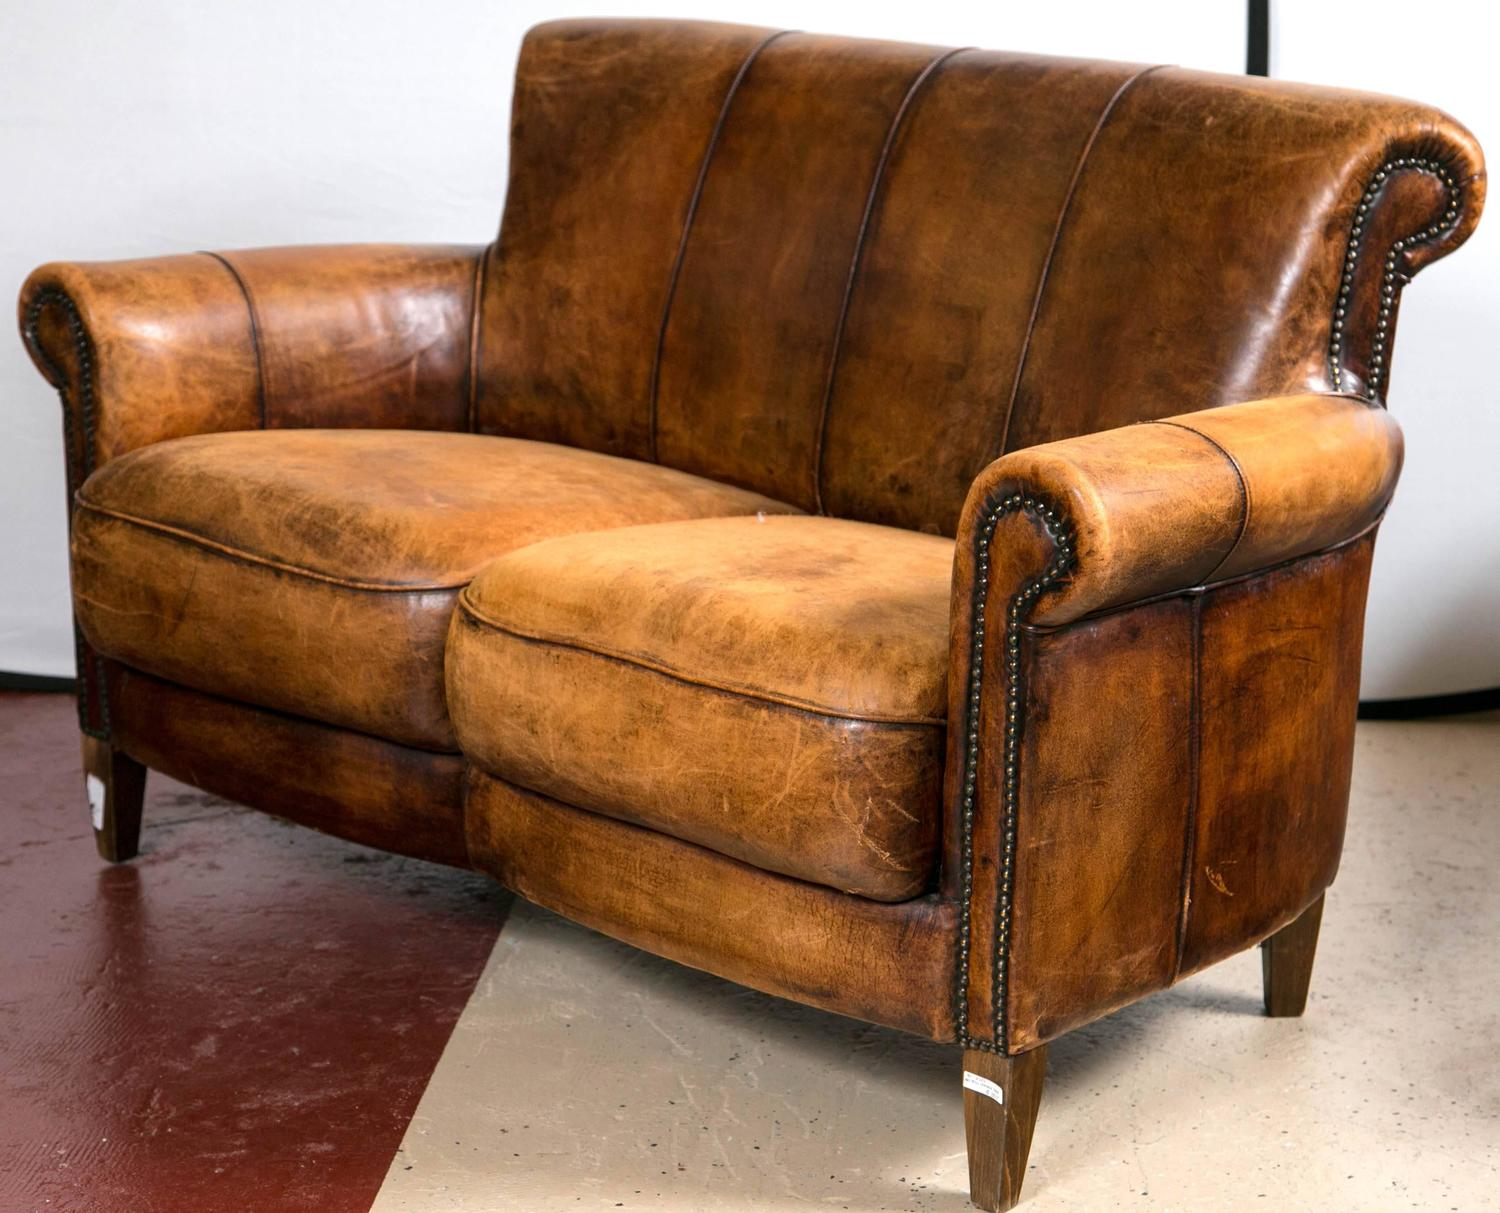 Vintage french distressed art deco leather sofa at 1stdibs for Furniture leather sofa